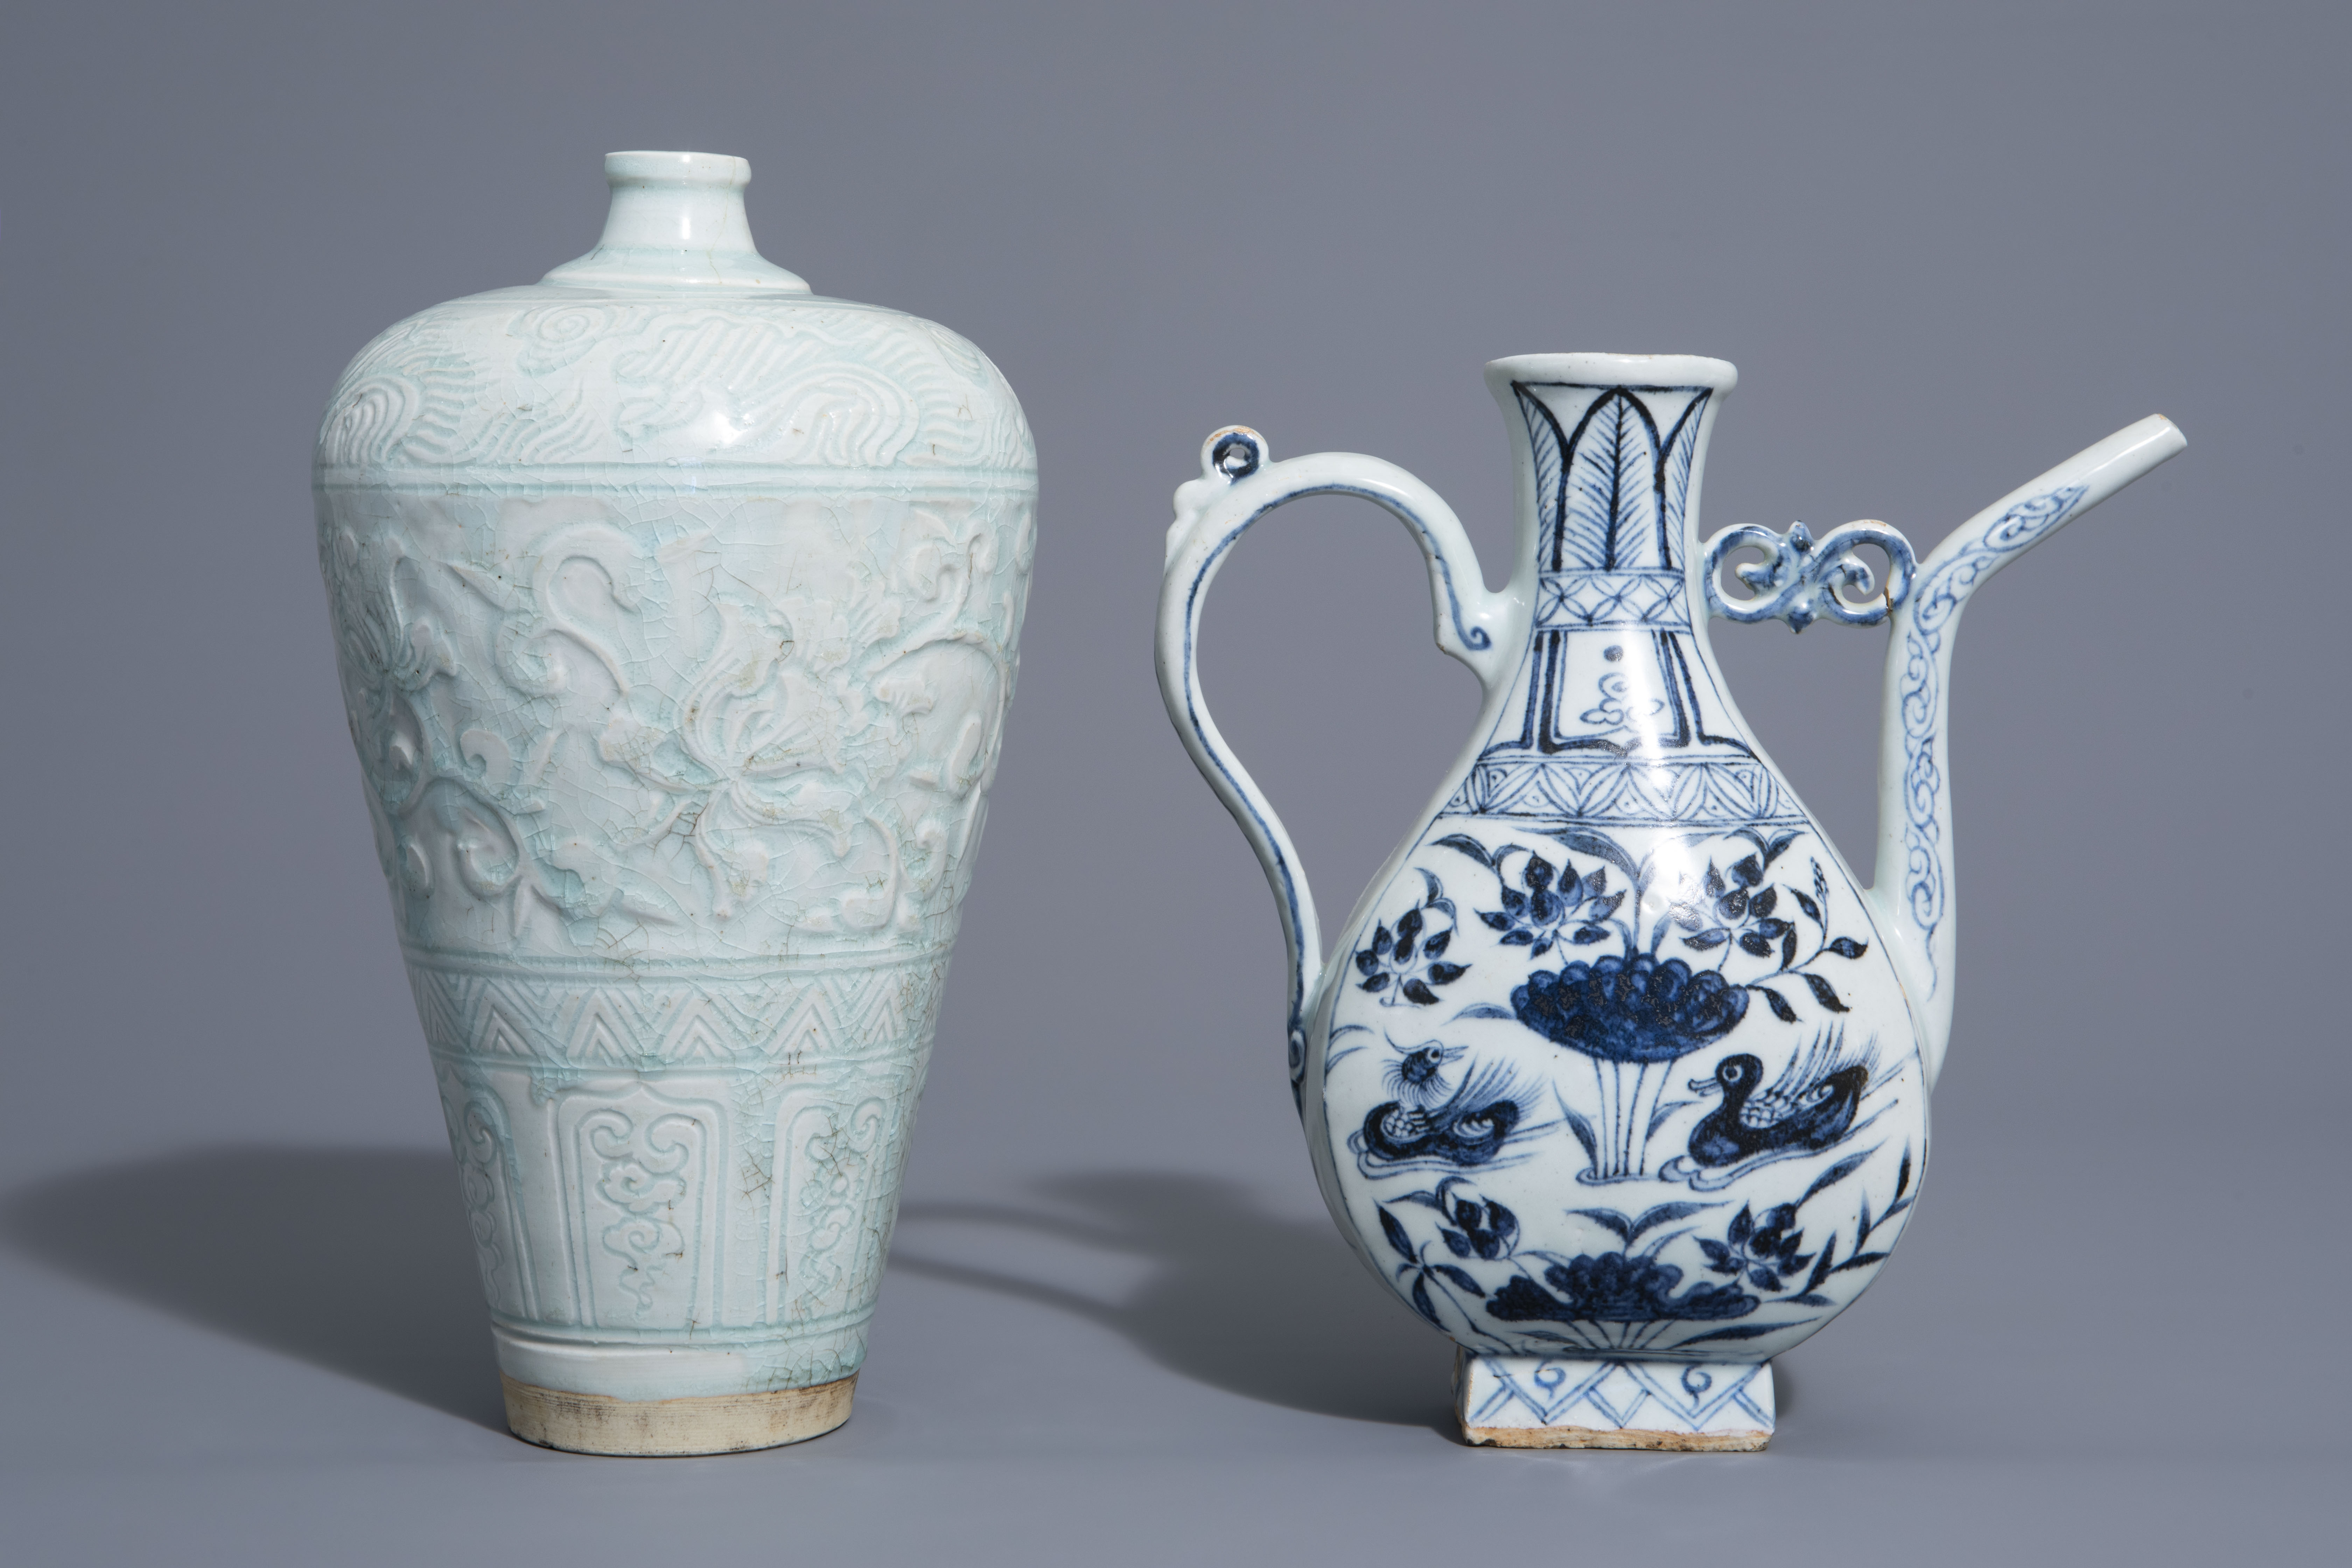 A Chinese blue and white jug and a qingbai vase in Yuan style, 19th/20th C.